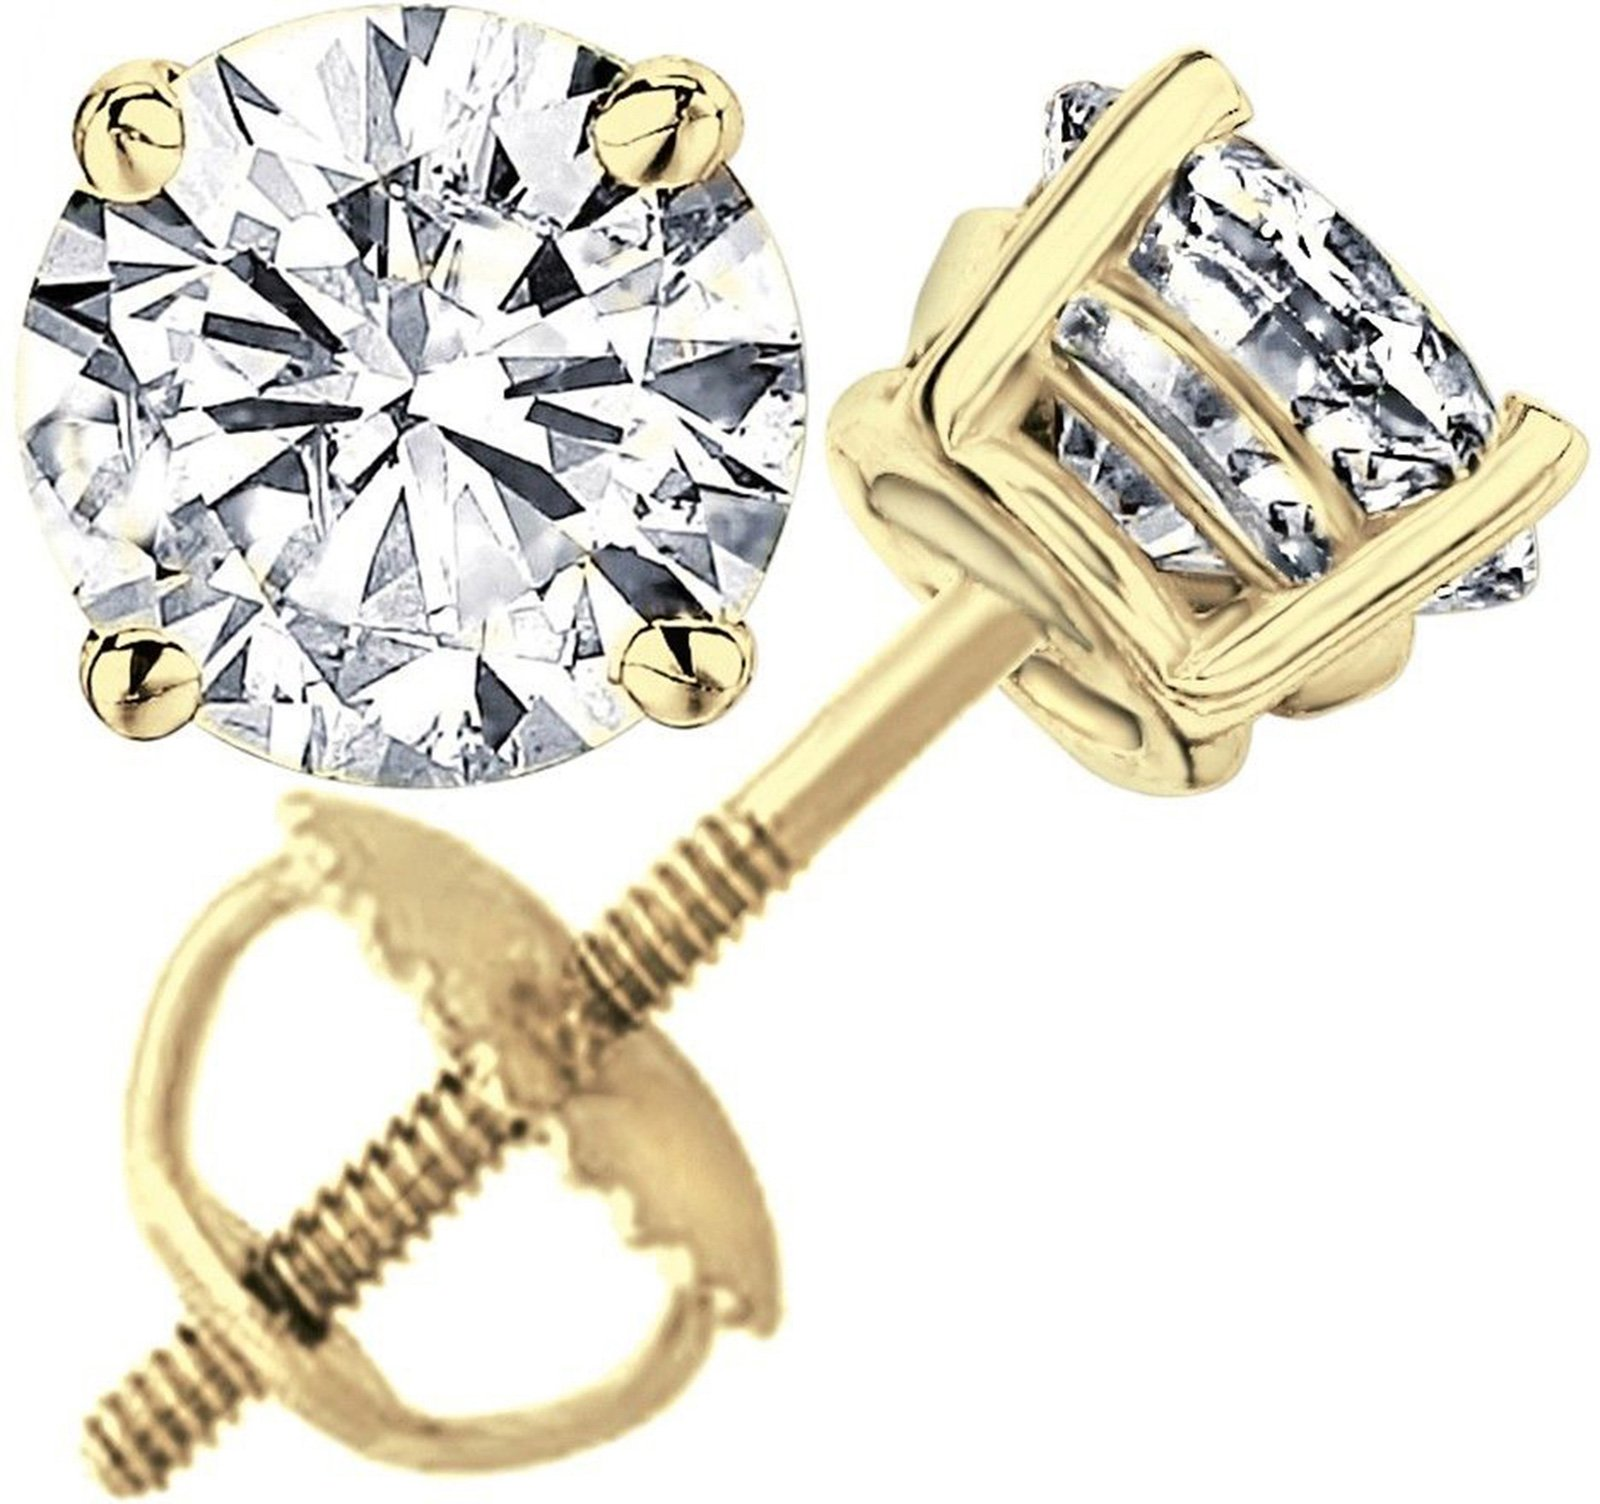 3.10 CT Round Brilliant Cut CZ Solitaire Stud Earrings in 14k Yellow Gold Screw Back